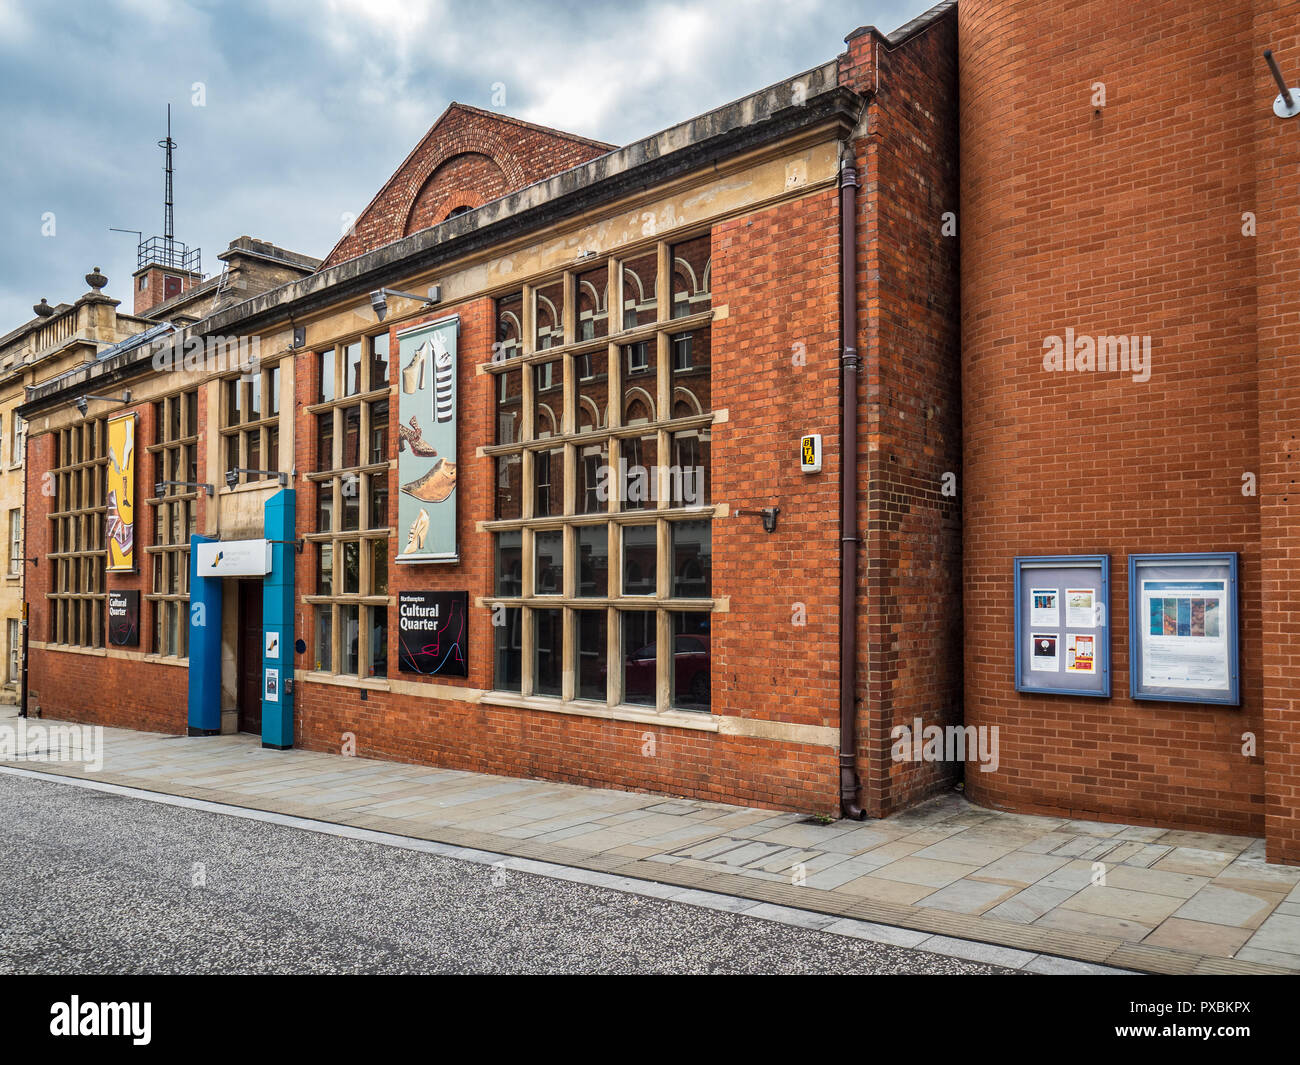 Northampton Museum and Art Gallery - houses the largest collection of shoes in the world (over 12,000 pairs). Established 1865, current site 1884. - Stock Image